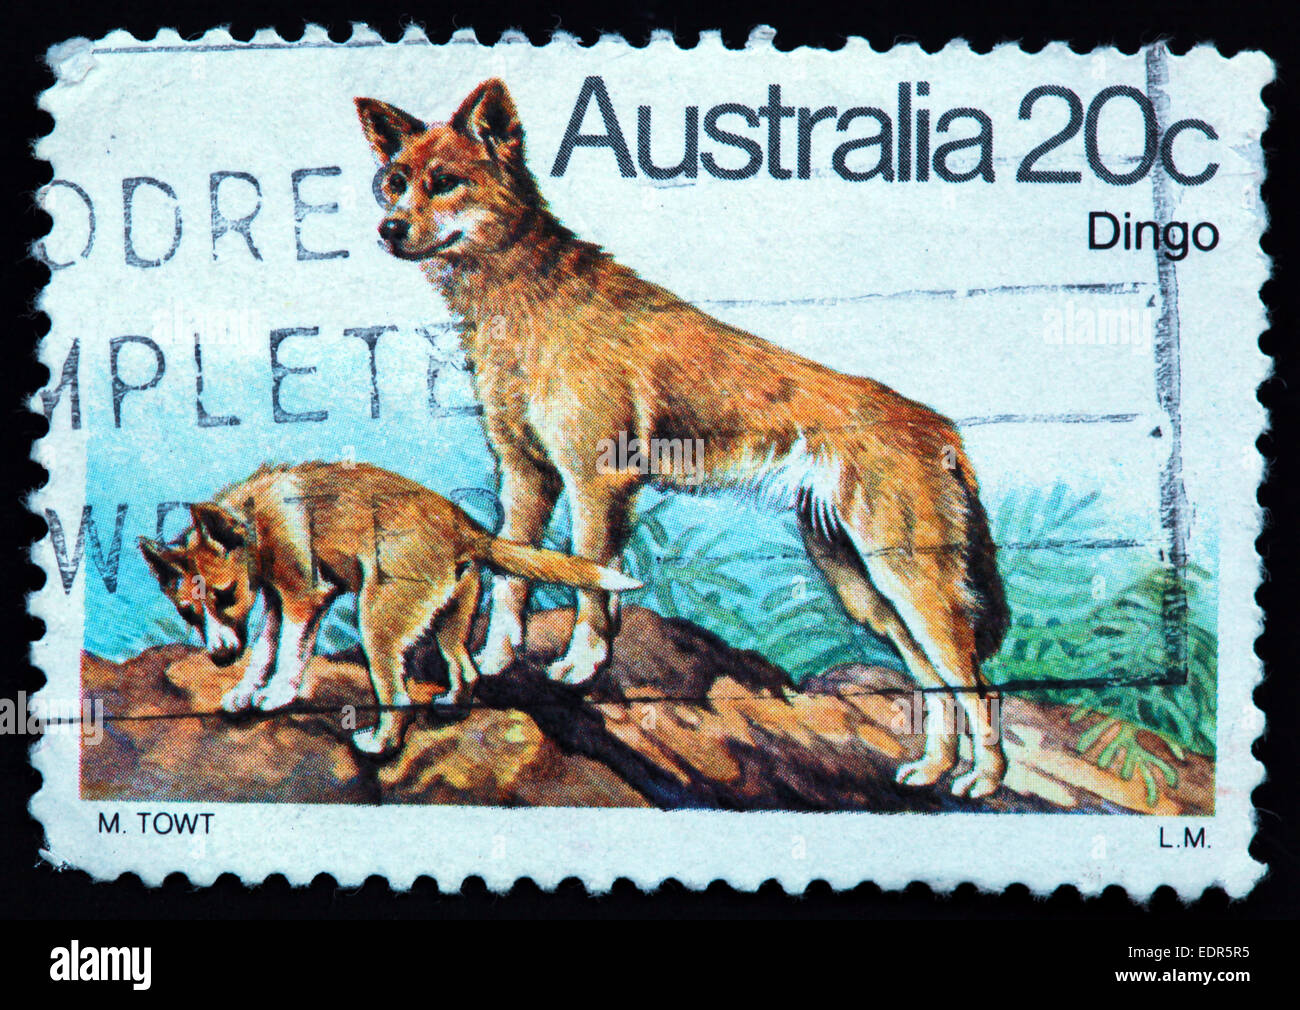 Used and postmarked Australia / Austrailian Stamp 20c Dingo L.M LM M TOWT Stock Photo